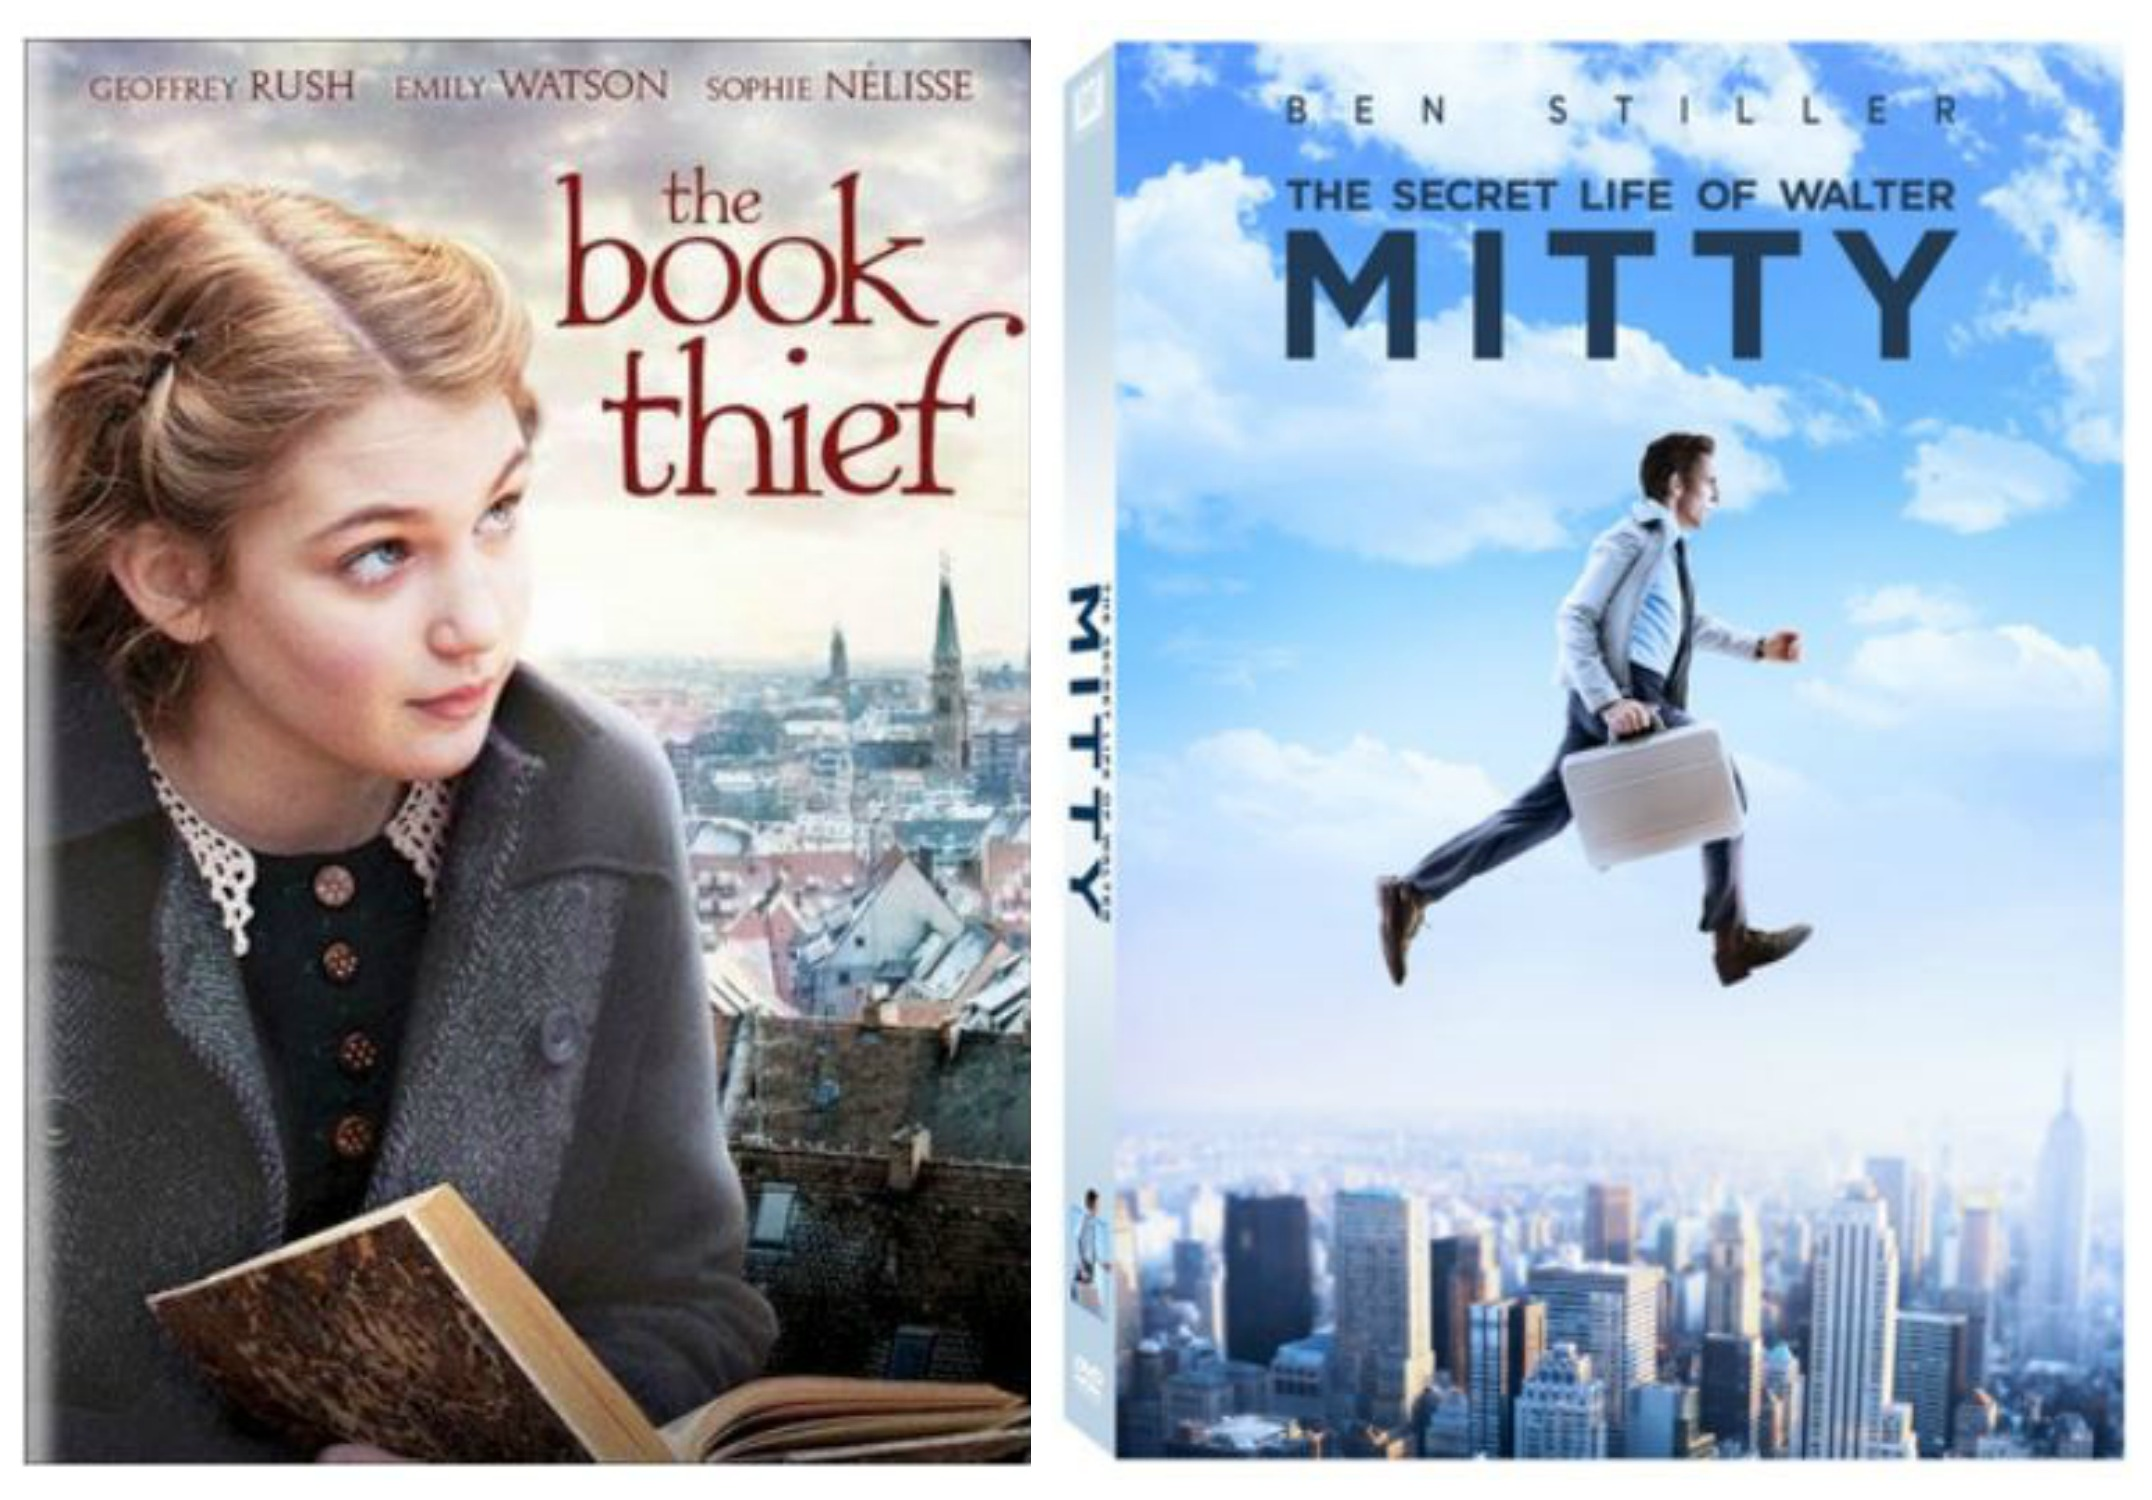 an analysis of the personalities of walter mitty in the secret life of walter mitty A summary of themes in sue monk kidd's the secret life of  summary & analysis  and blacks with the multifaceted personalities that we find in real life.